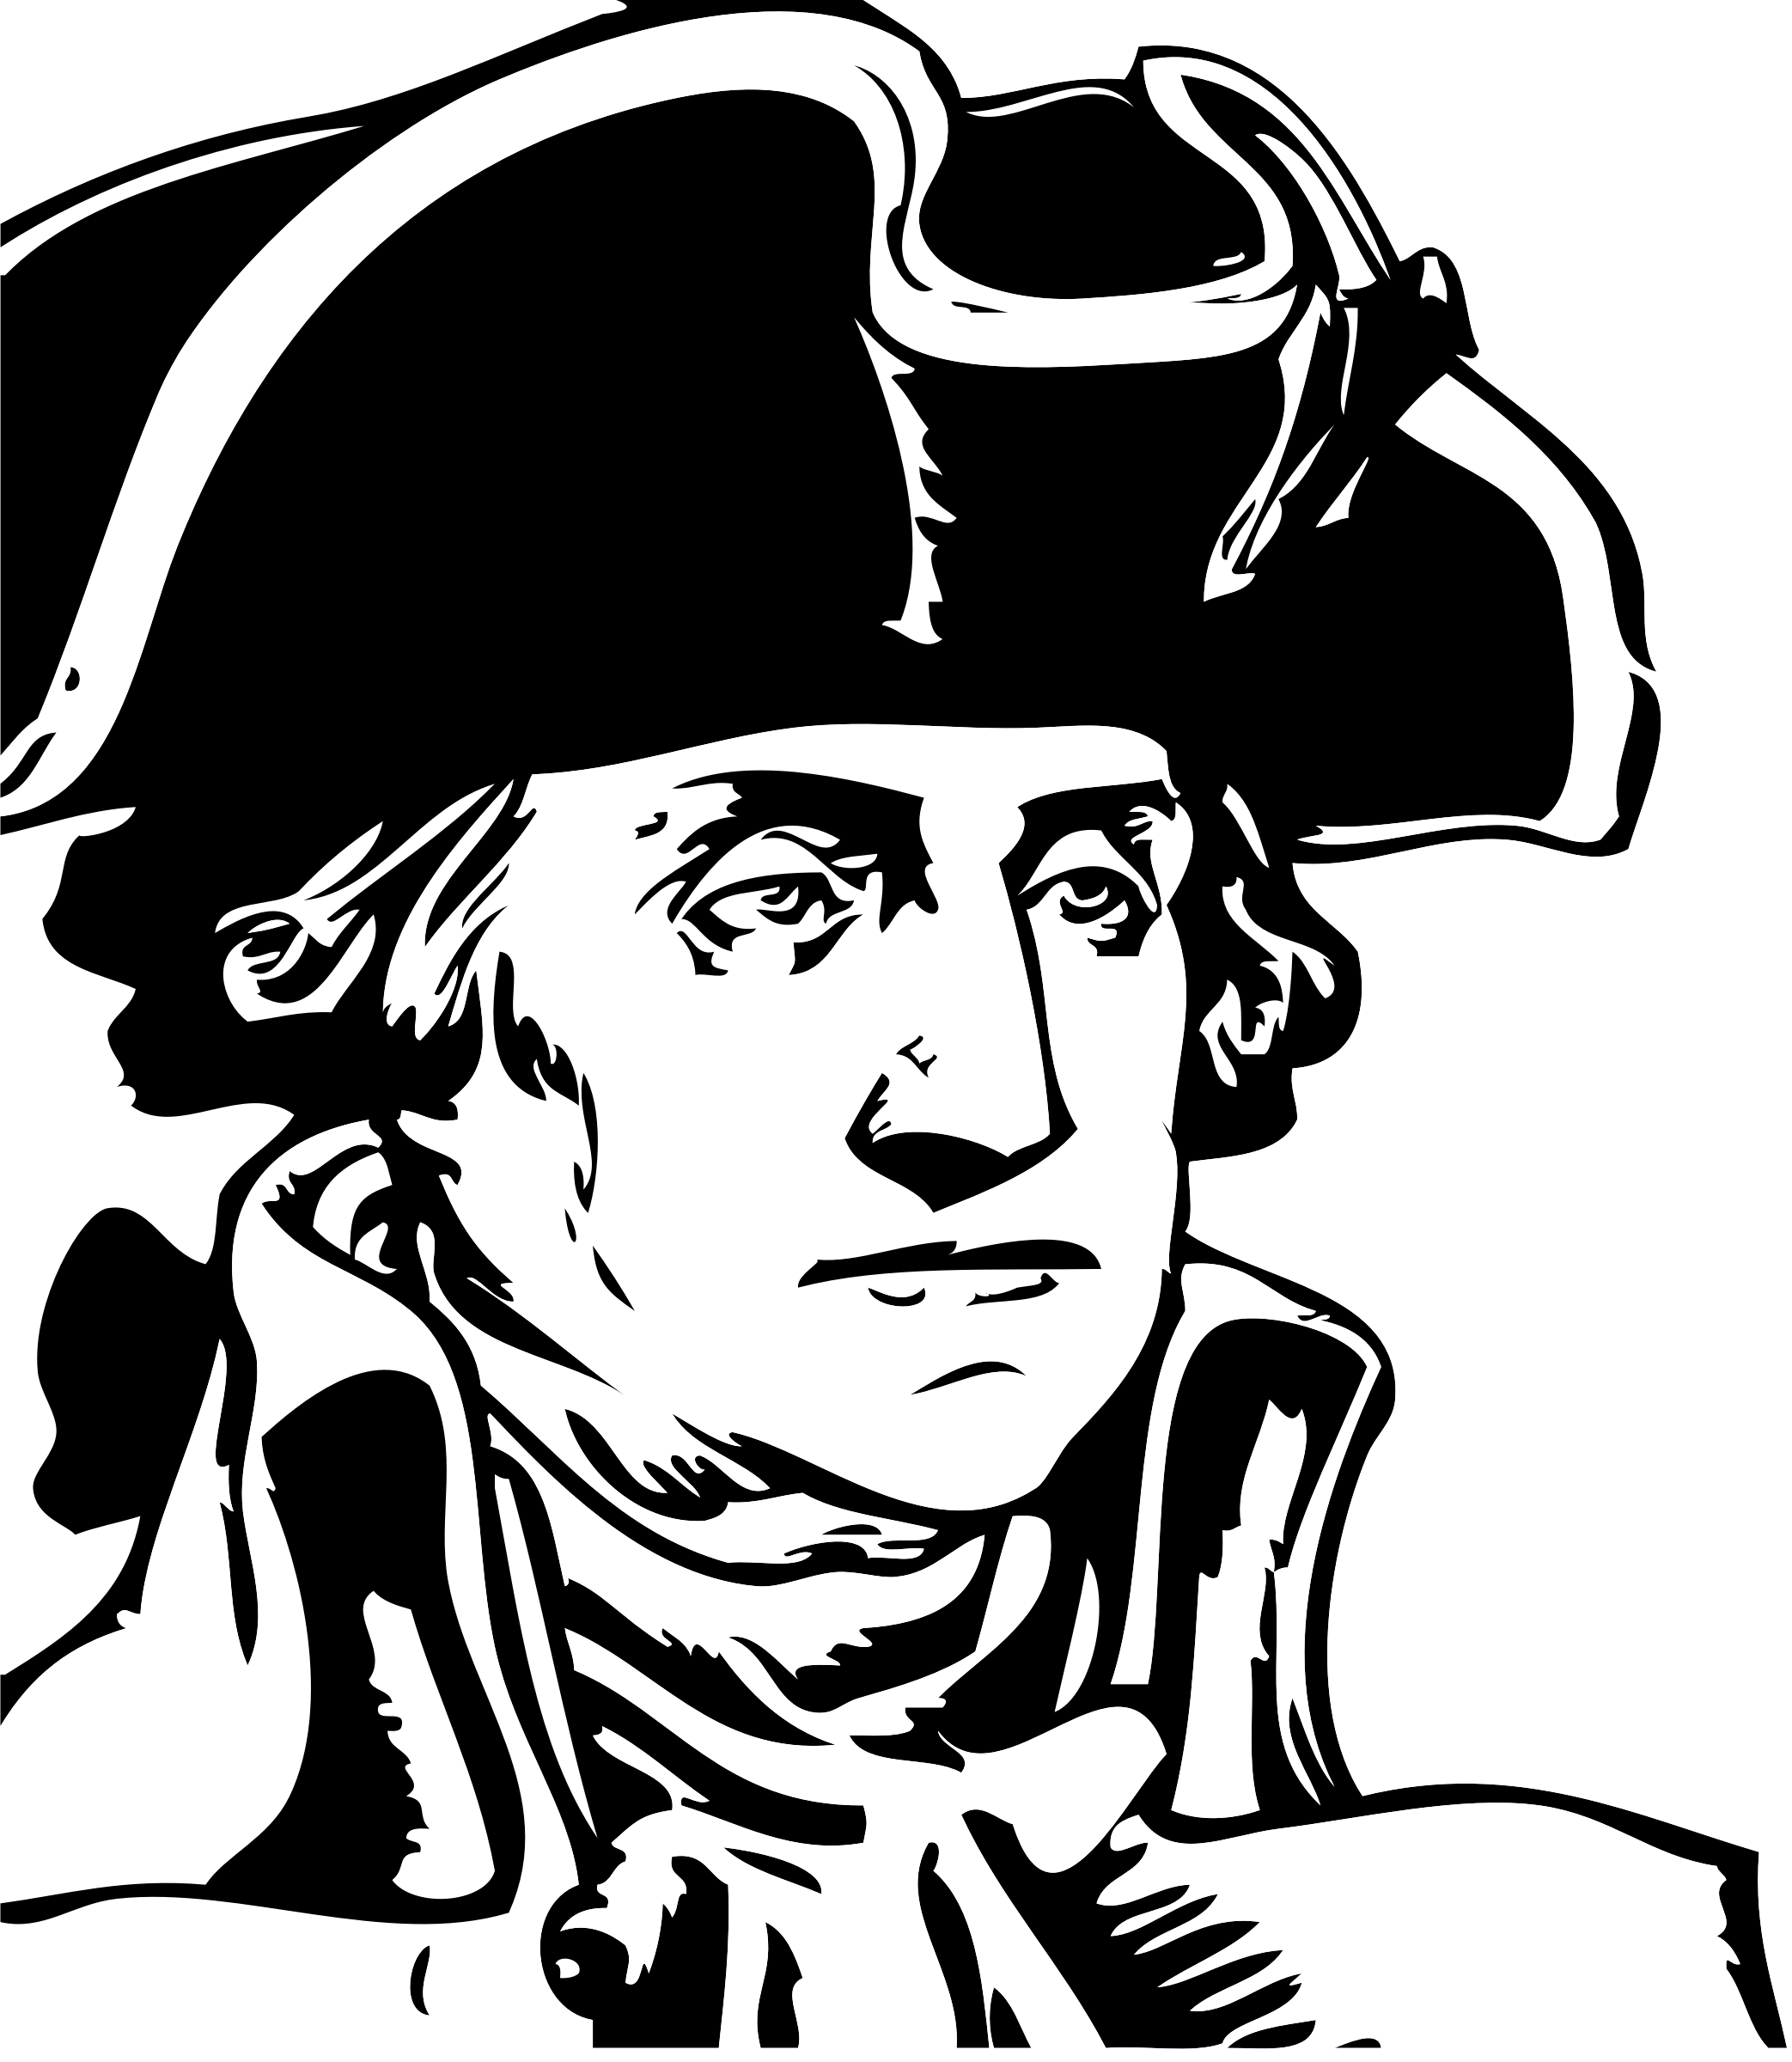 George Washington by FunDraw_dot_com